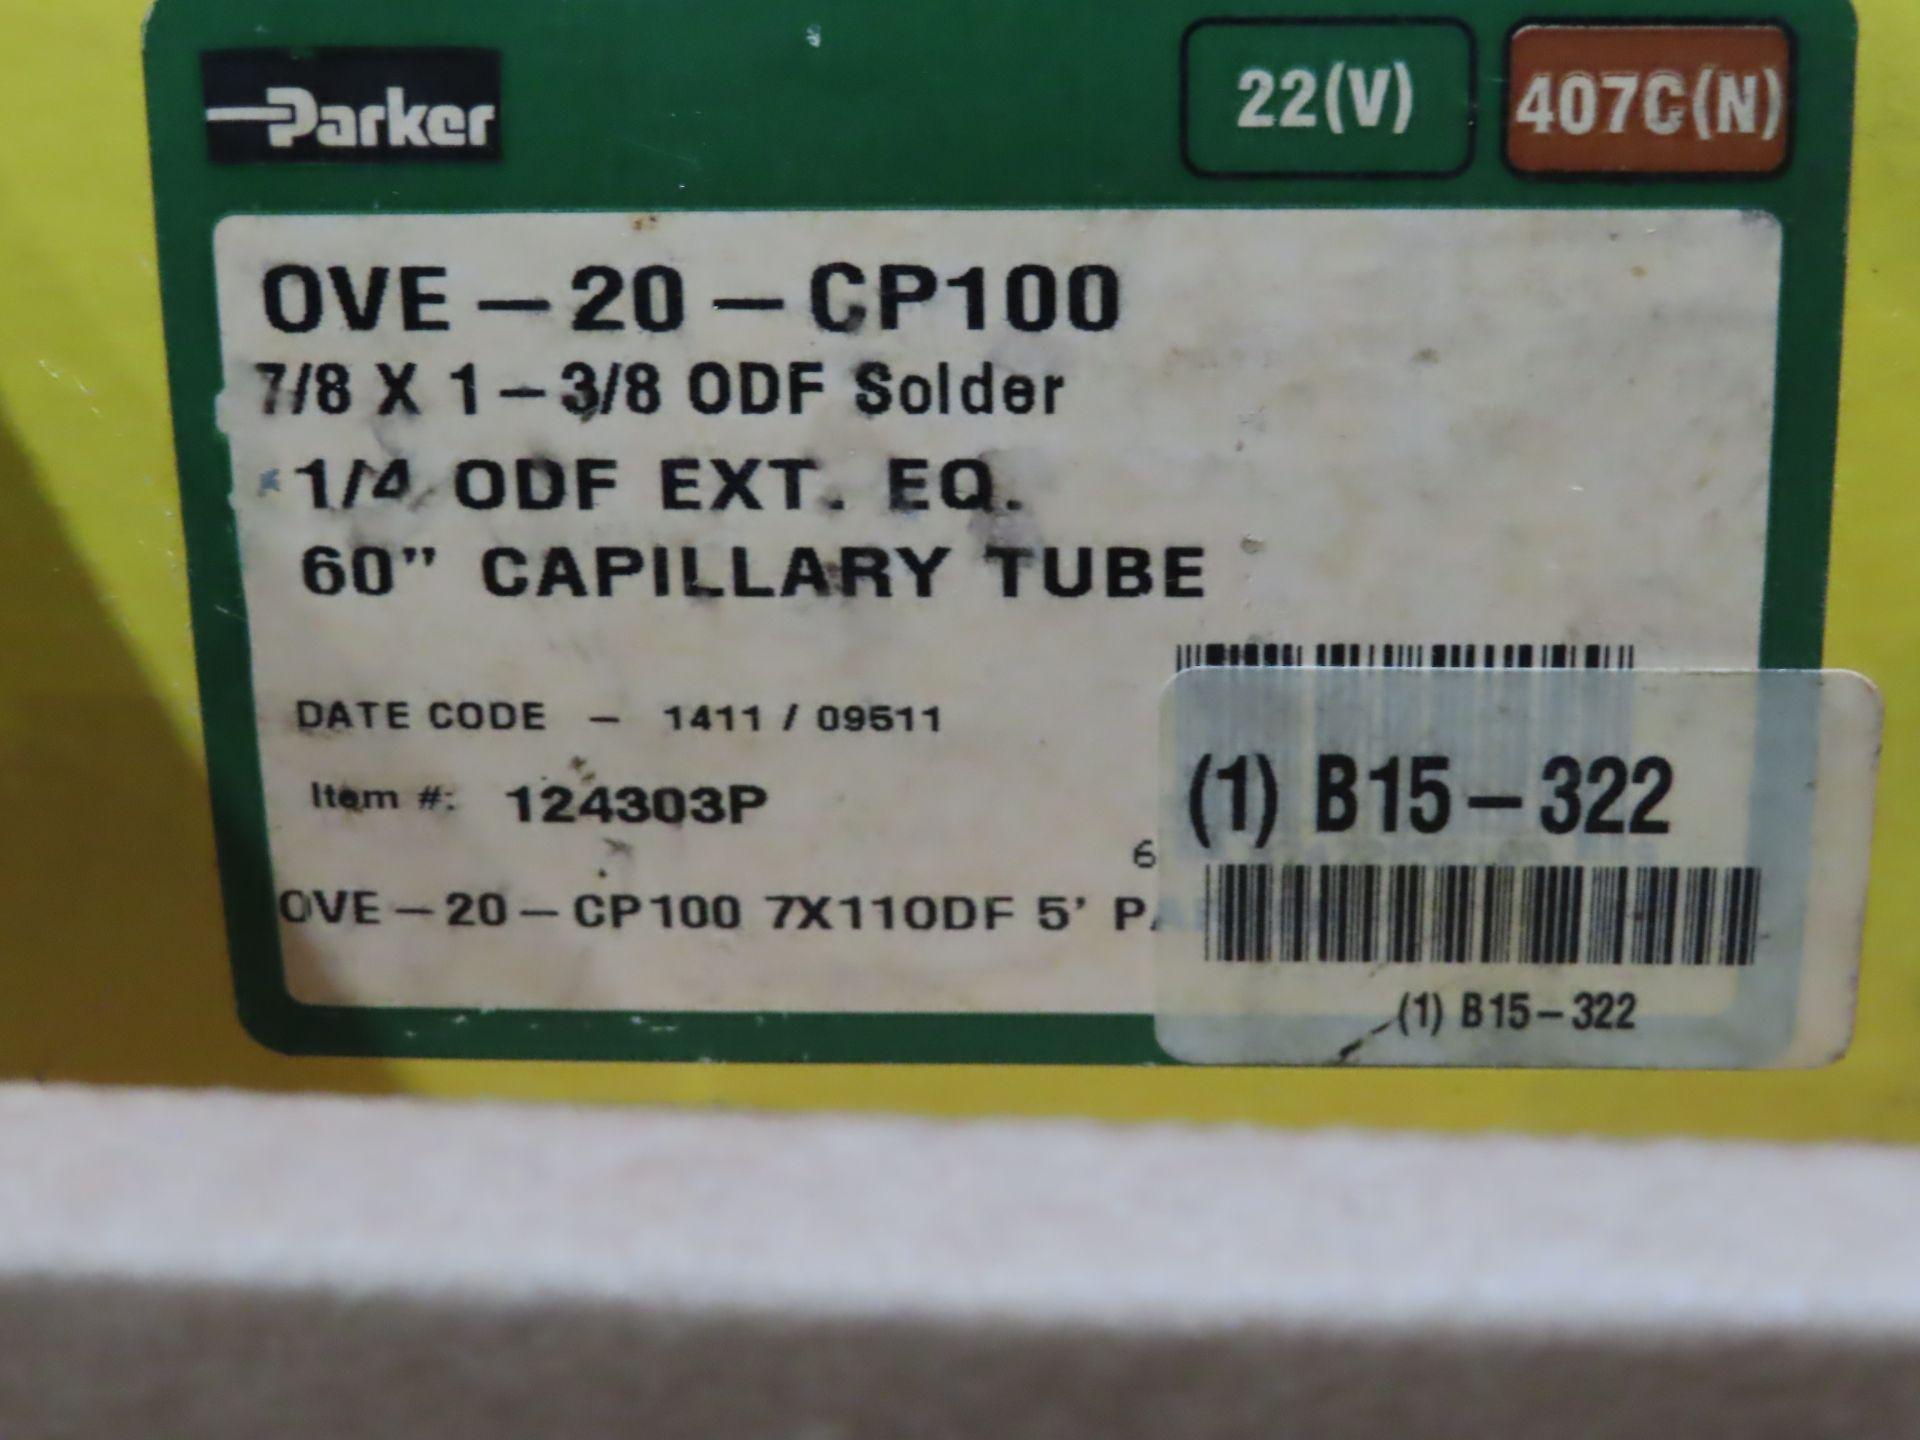 Lot 28 - Parker model OVE-20-CP100, new in box, as always, with Brolyn LLC auctions, all lots can be picked